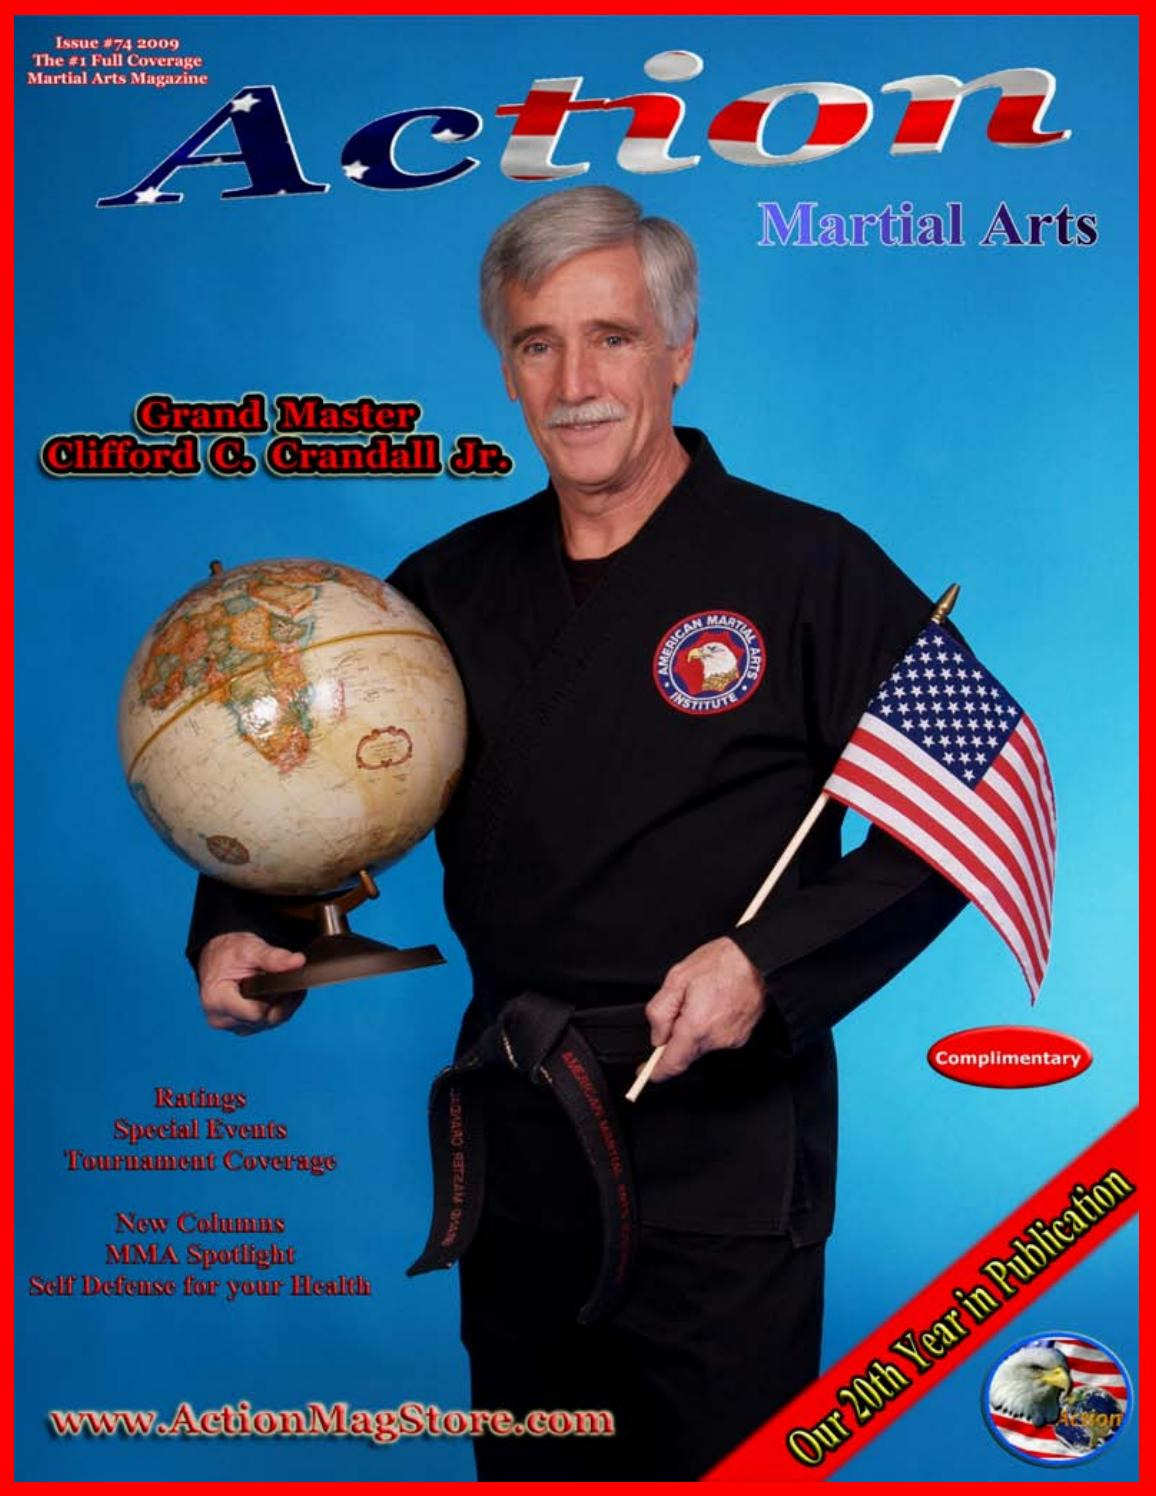 Exceptionnel Action Martial Arts Magazine #74 by Action Martial Arts Magazine  UU67